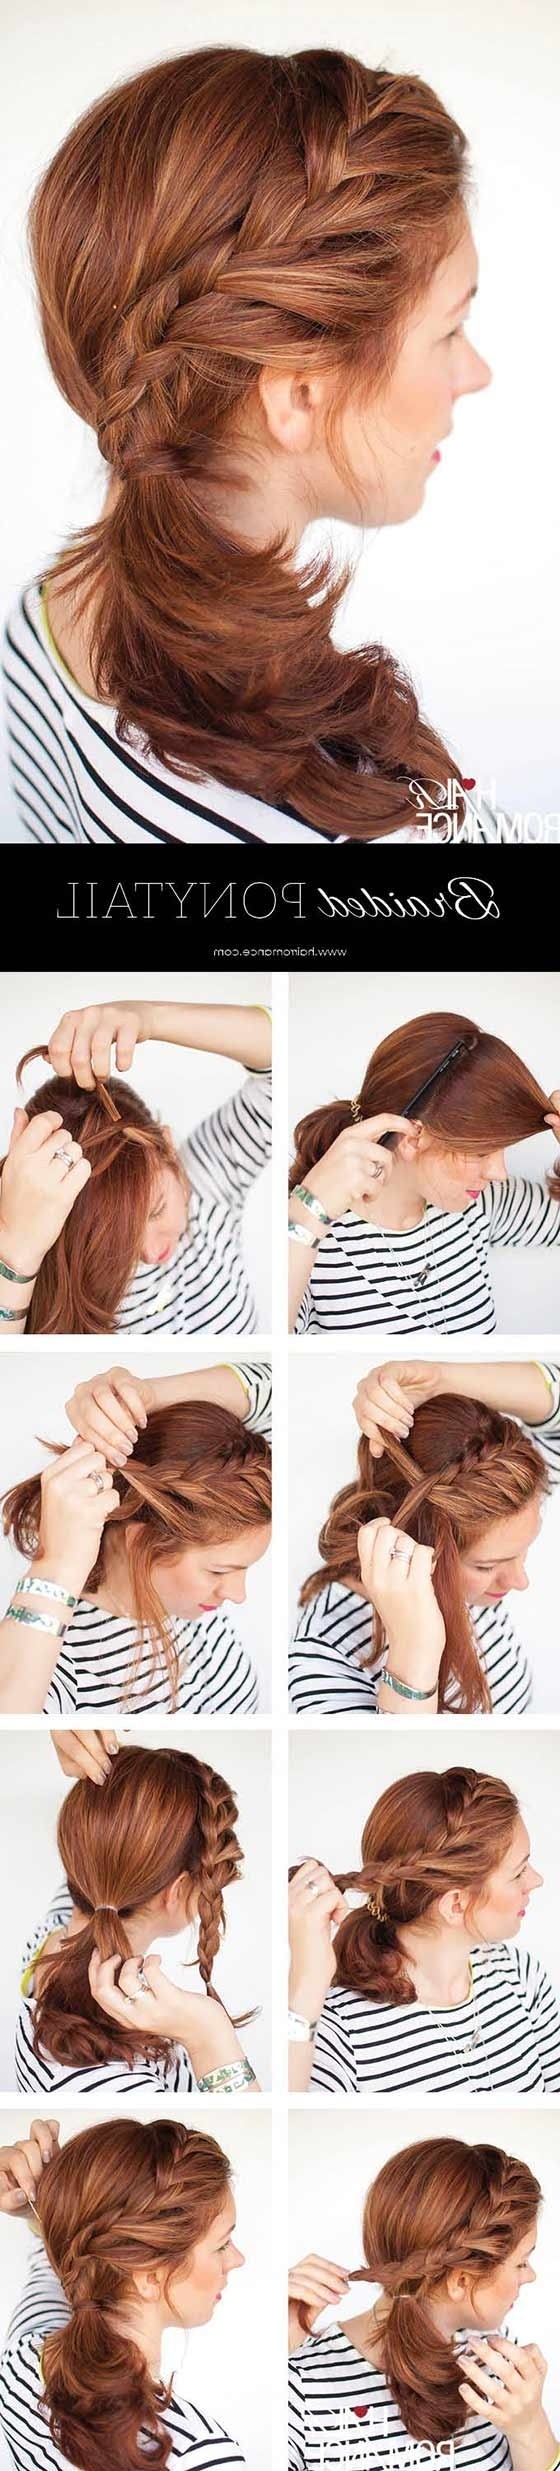 40 Braided Hairstyles For Long Hair Throughout Well Known Creative Side Ponytail Hairstyles (View 4 of 20)